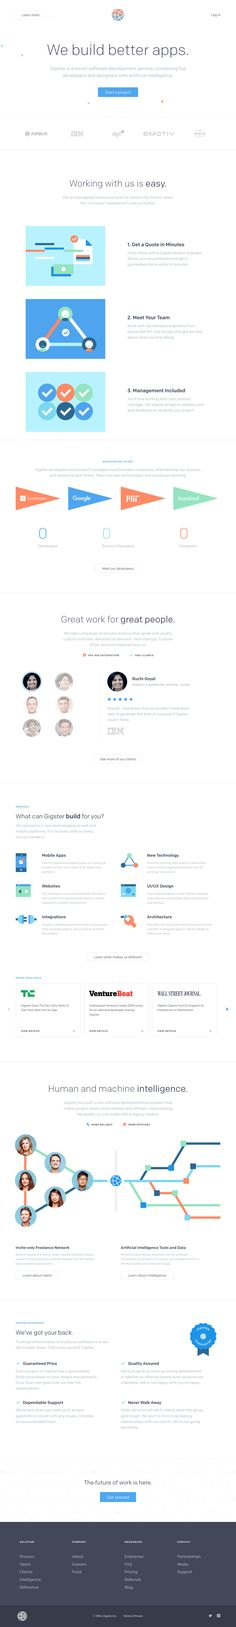 Gigster (More web design inspiration at topdesigninspiration.com) #design #web #webdesign #sitedesign #responsive #ux #ui